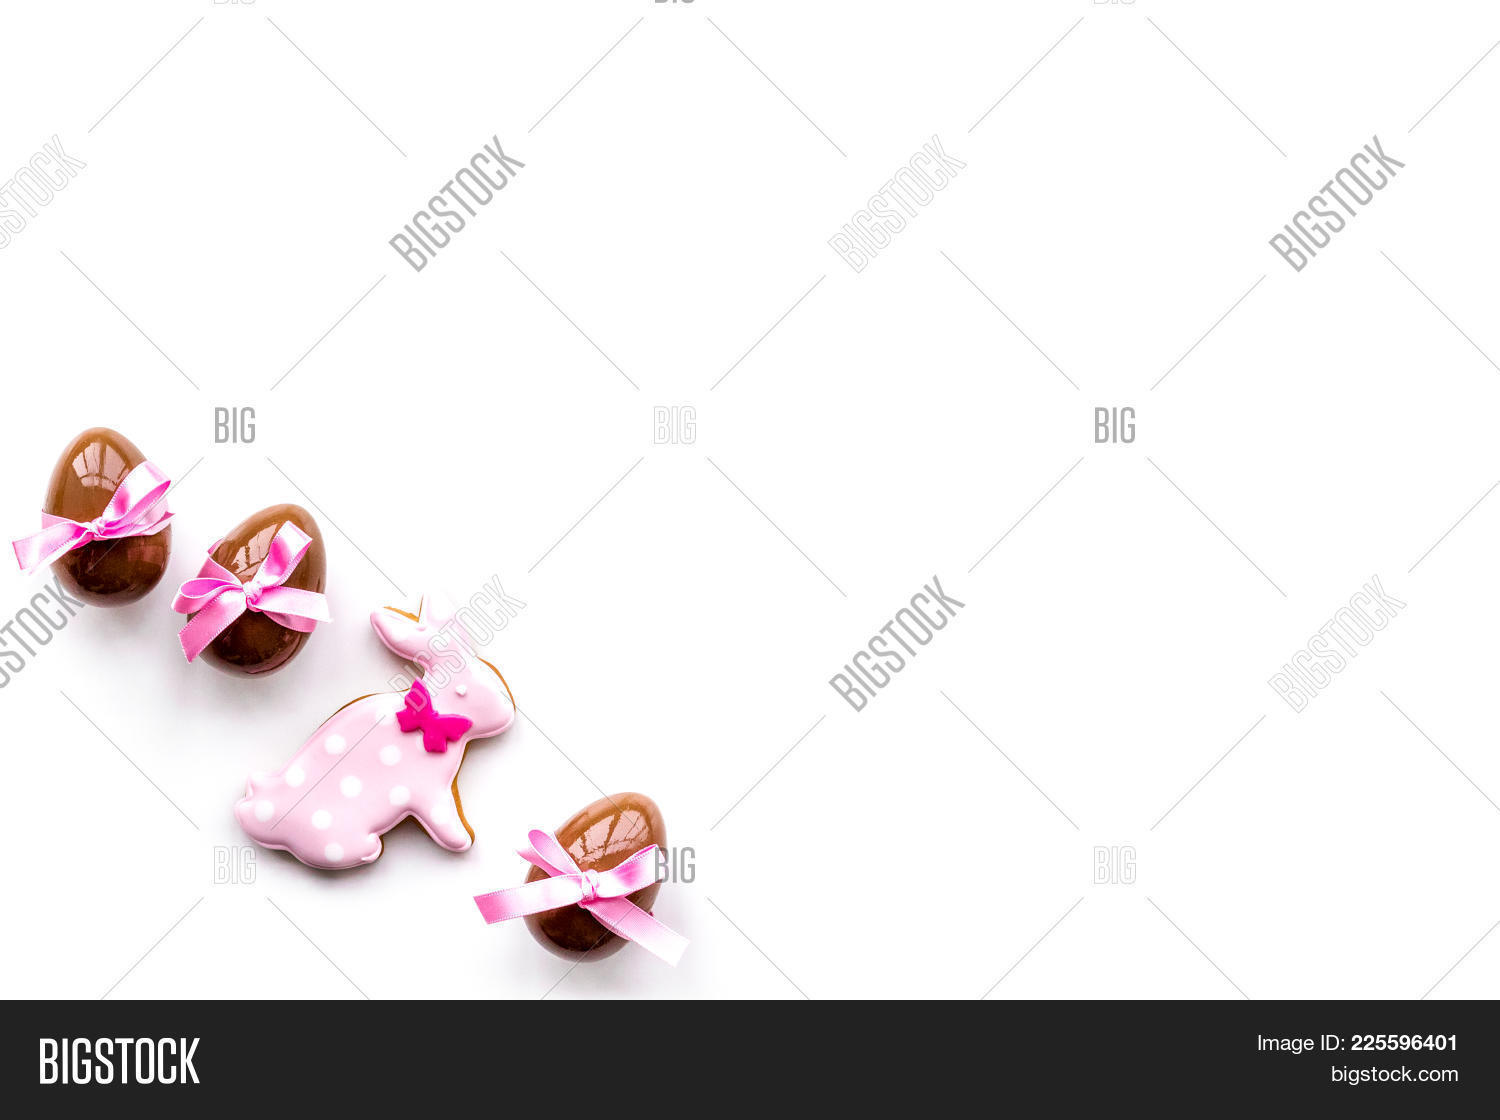 Sweets for easter ppt background powerpoint template sweets for confectionery powerpoint template 60 slides toneelgroepblik Image collections